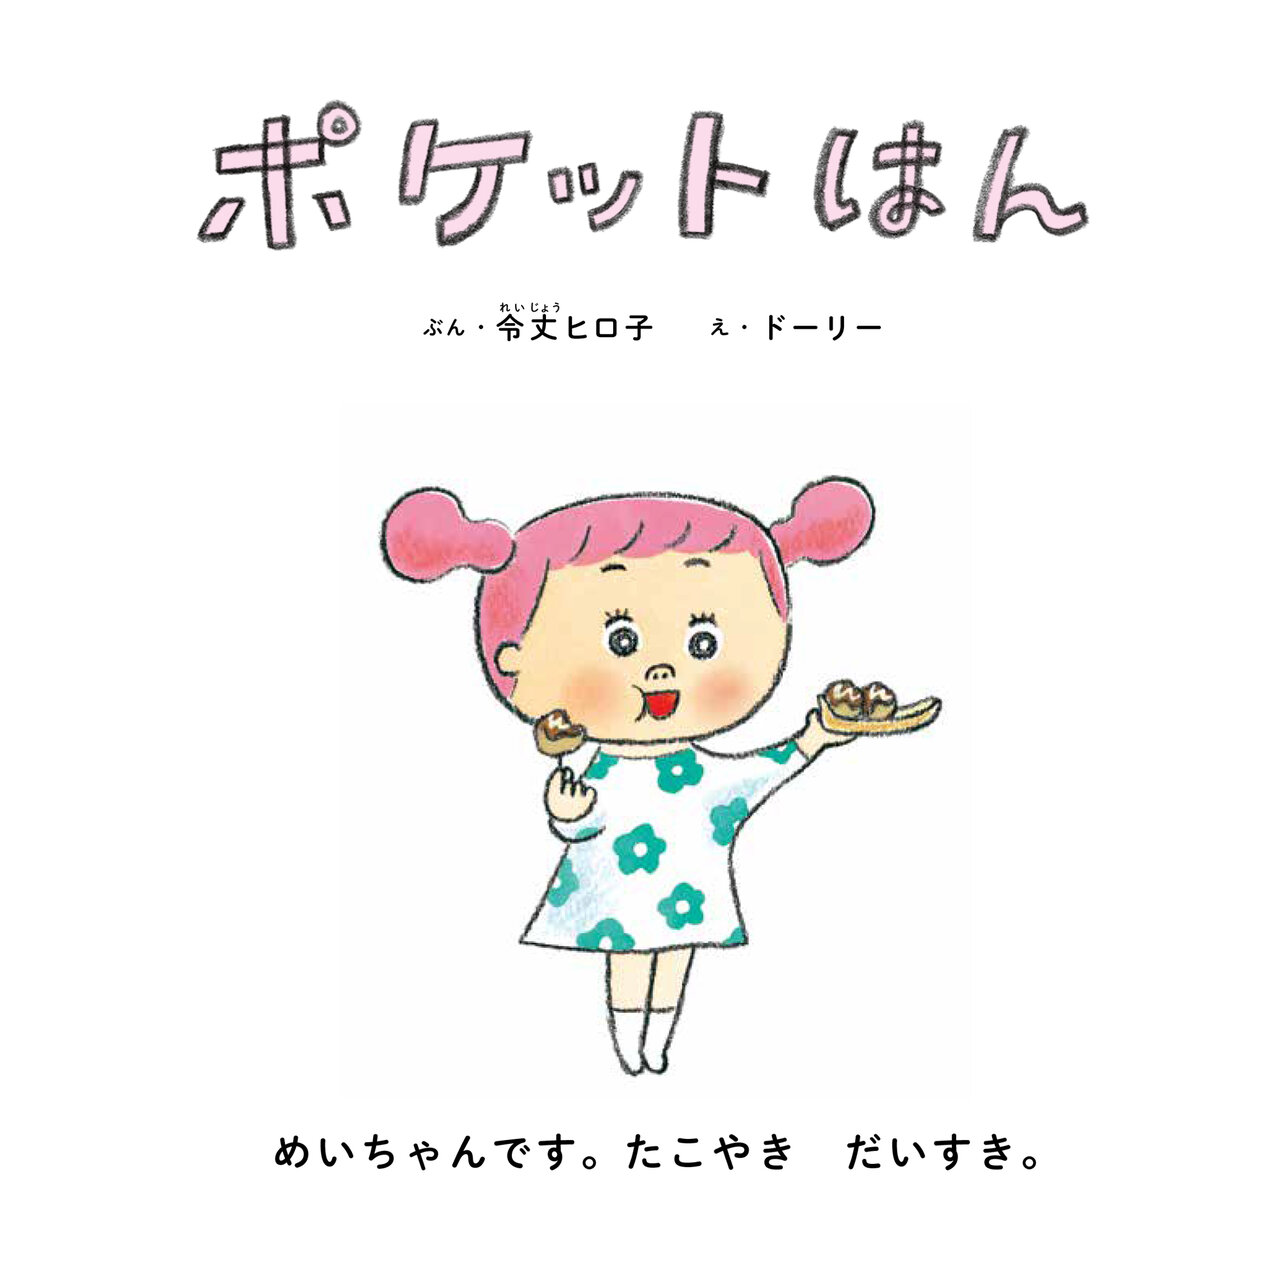 "<span class=""color-picker"" style=""color: rgb(91, 91, 91);"">たこ焼きを食べるめいちゃん<br>